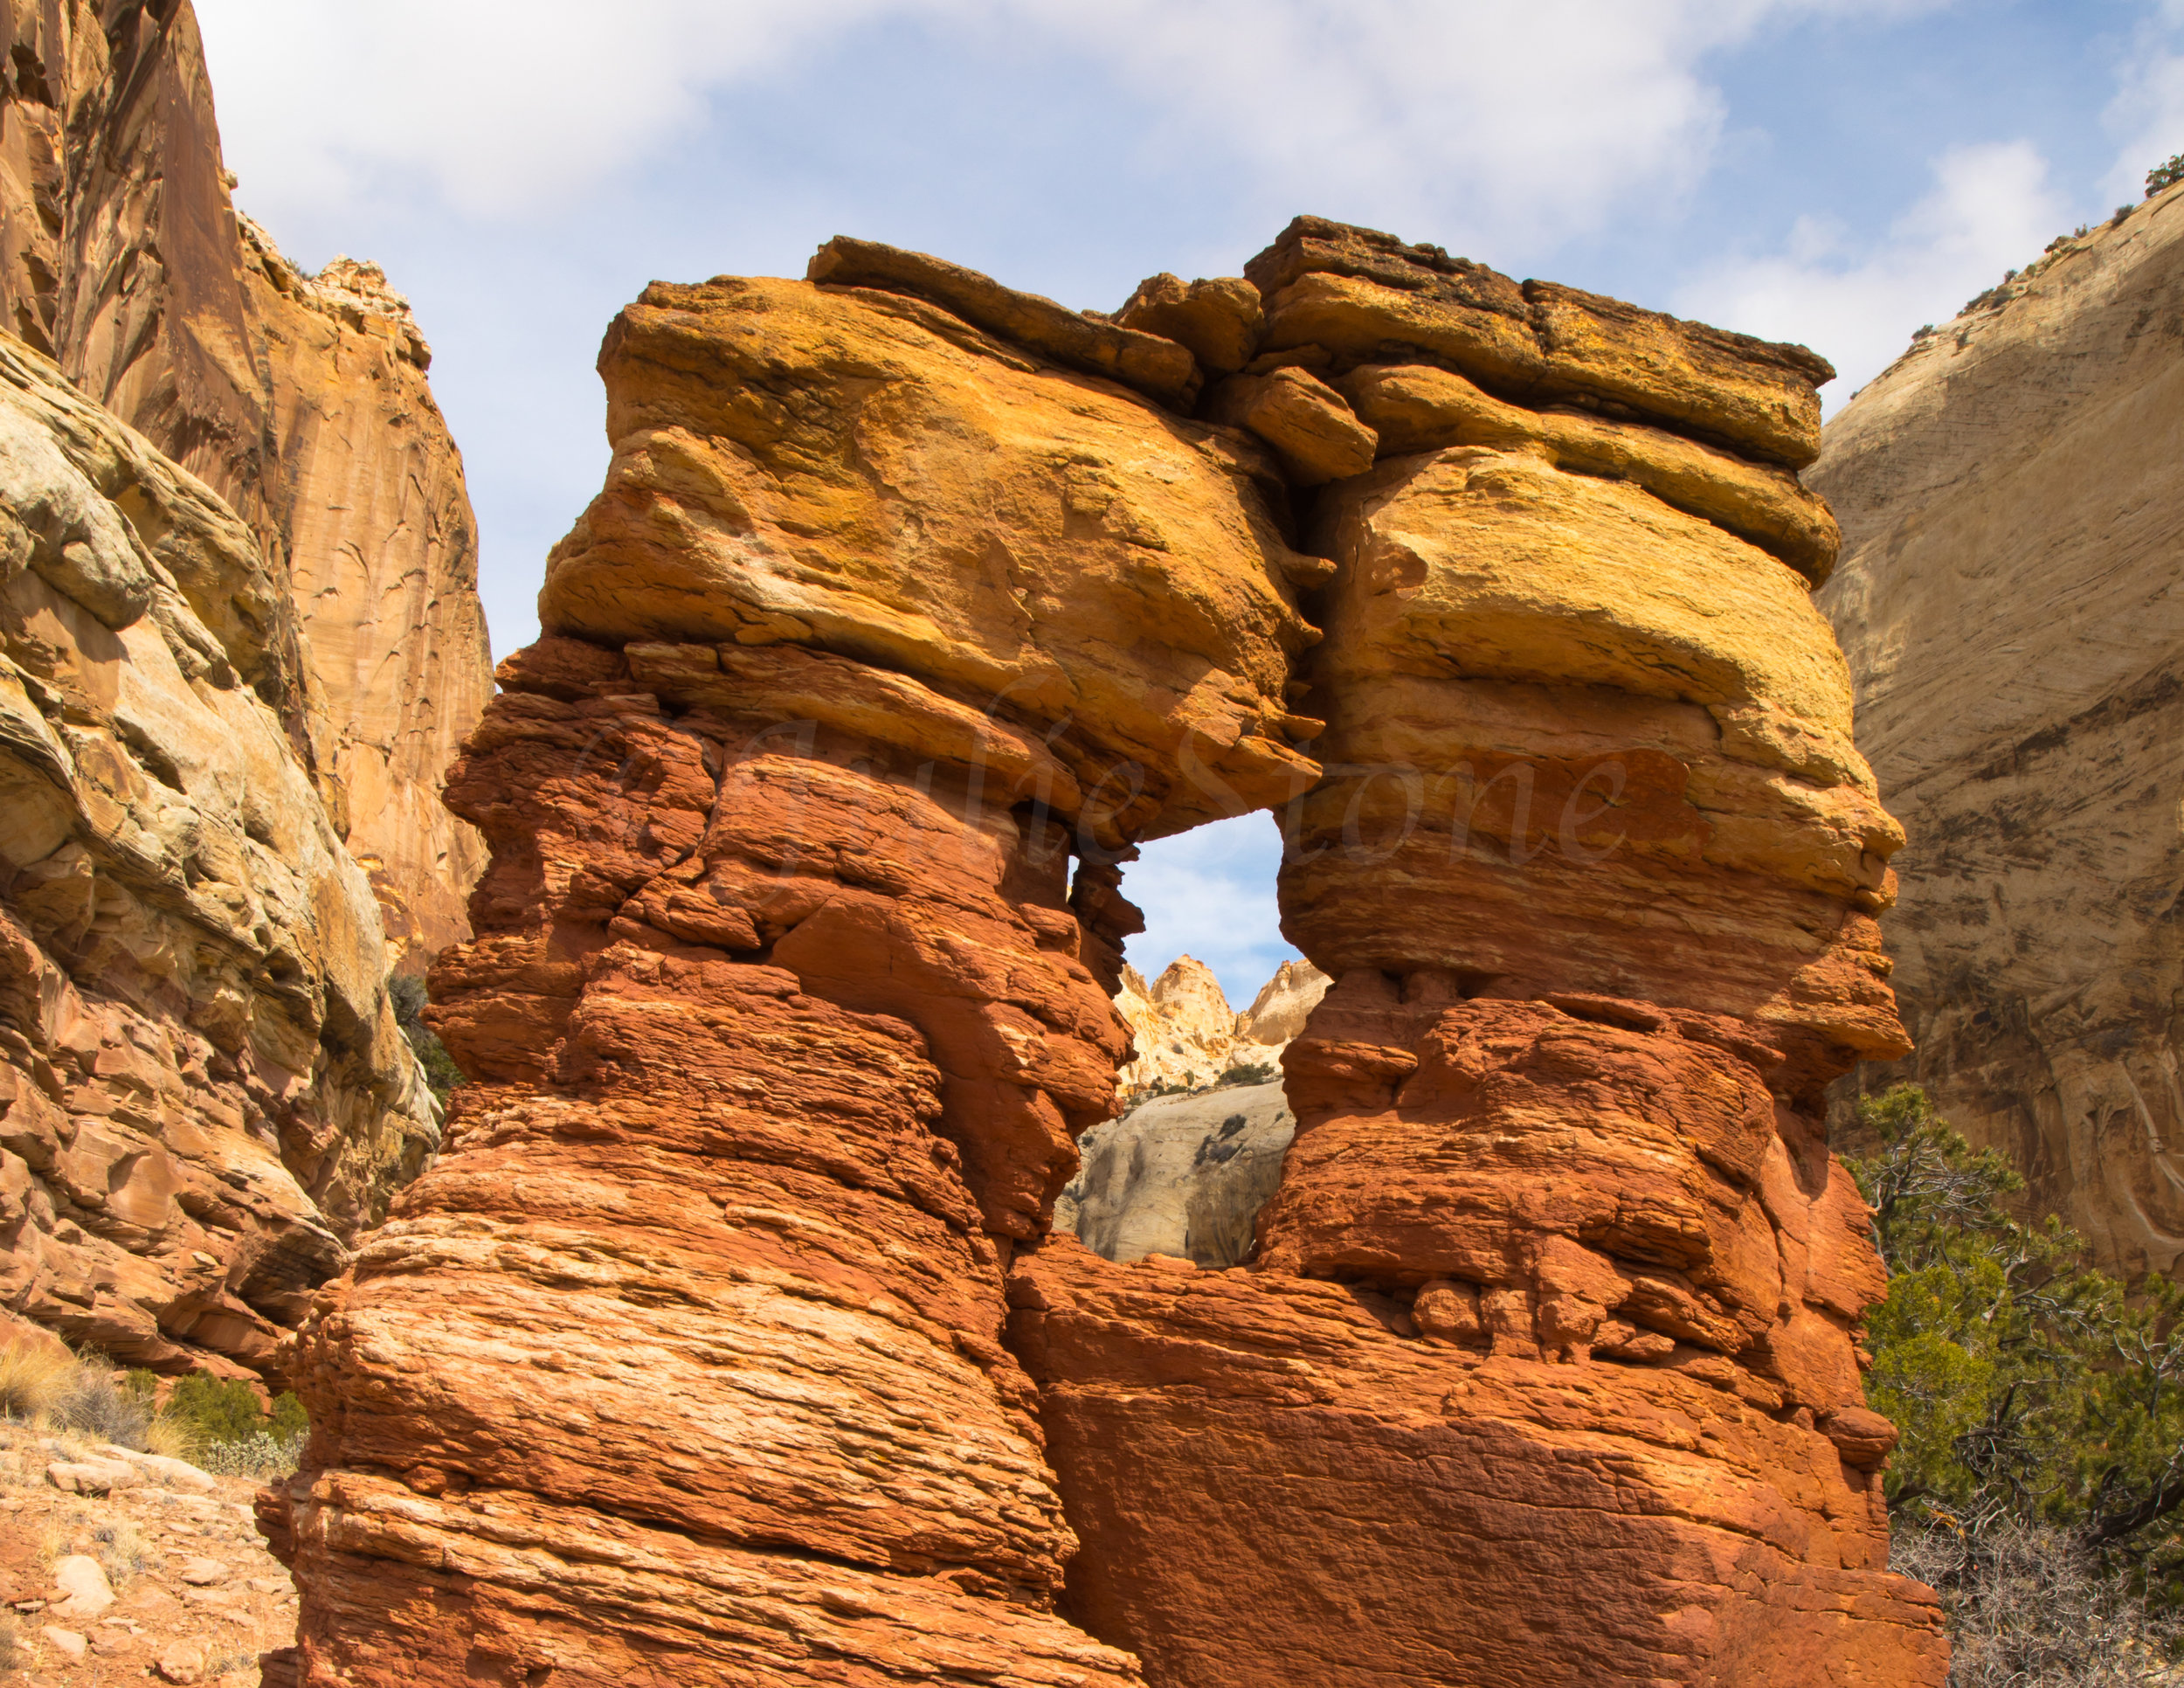 Capitol Reef National Park, Image # 0898